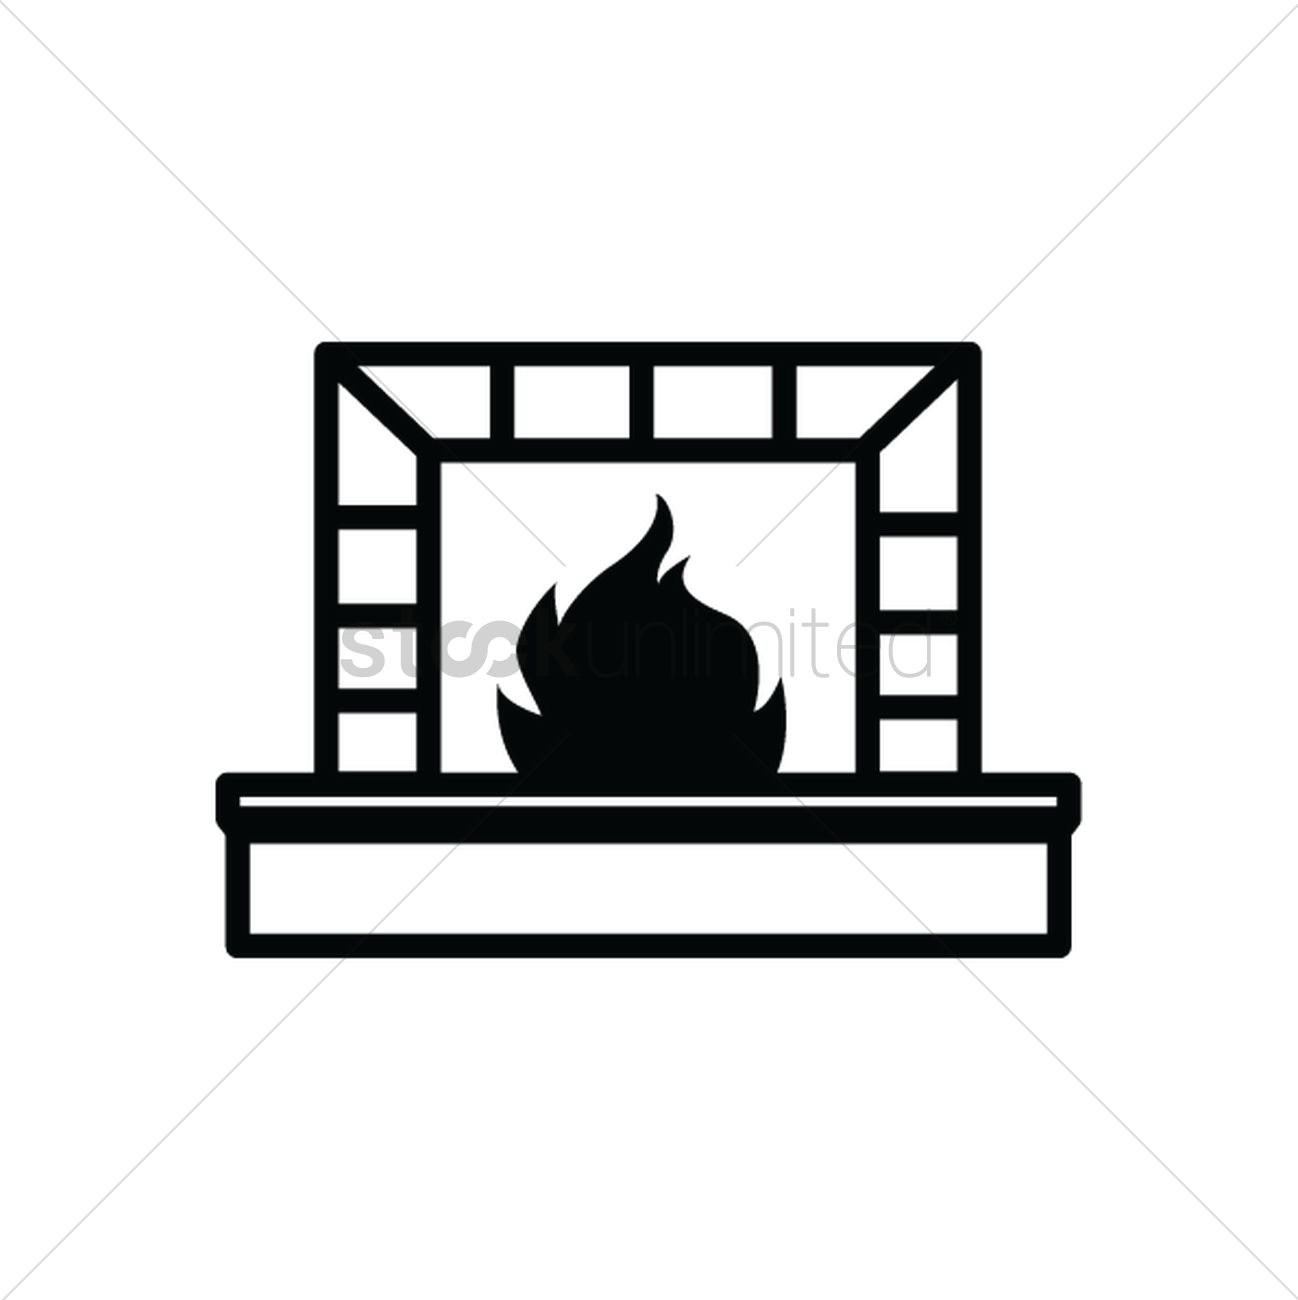 Fireplace Decal 95 43 Christmas Fireplace 4k Motion Graphic Youtube Amazon